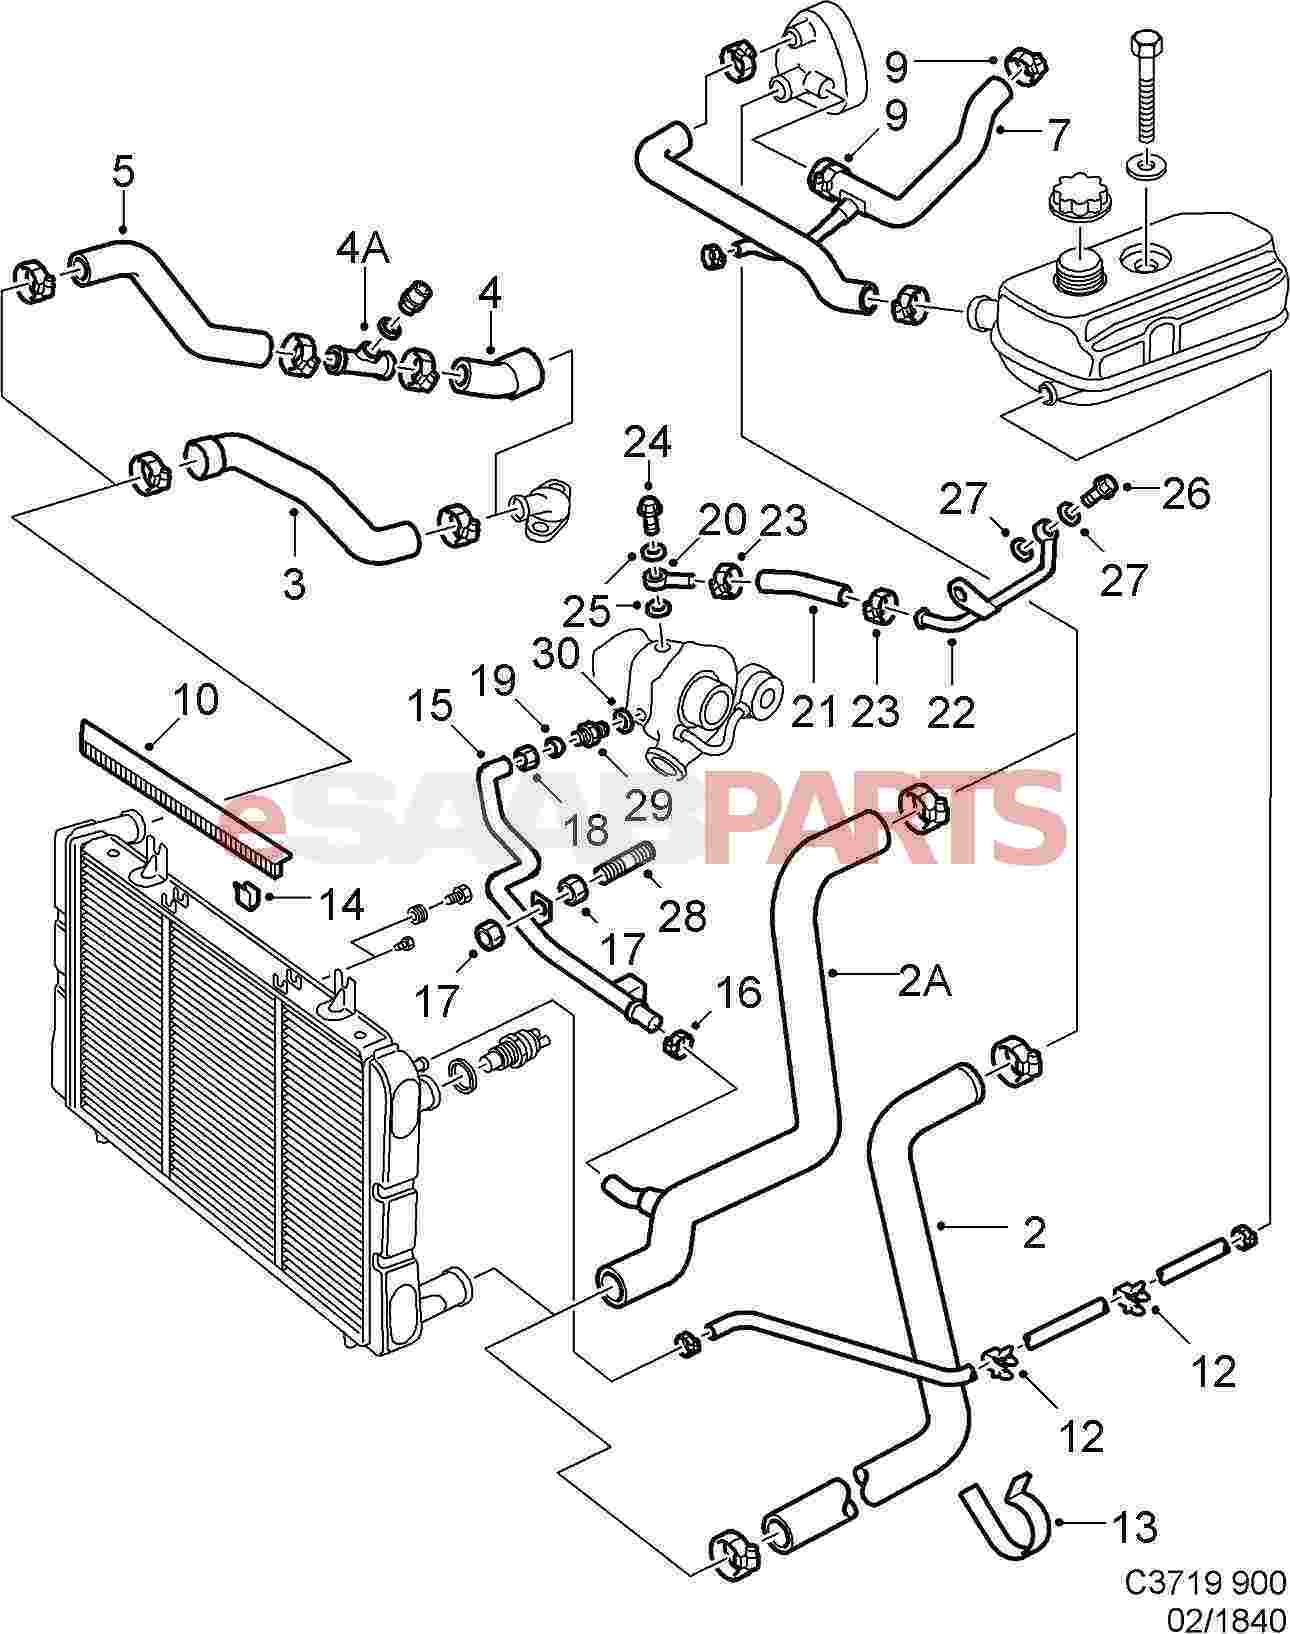 audi b5 s4 engine bay diagram best wiring library 2008 Sebring Convertible Parts Diagram 1995 saab engine wiring harness simple wiring diagram rh 14 14 terranut store saab 900 engine